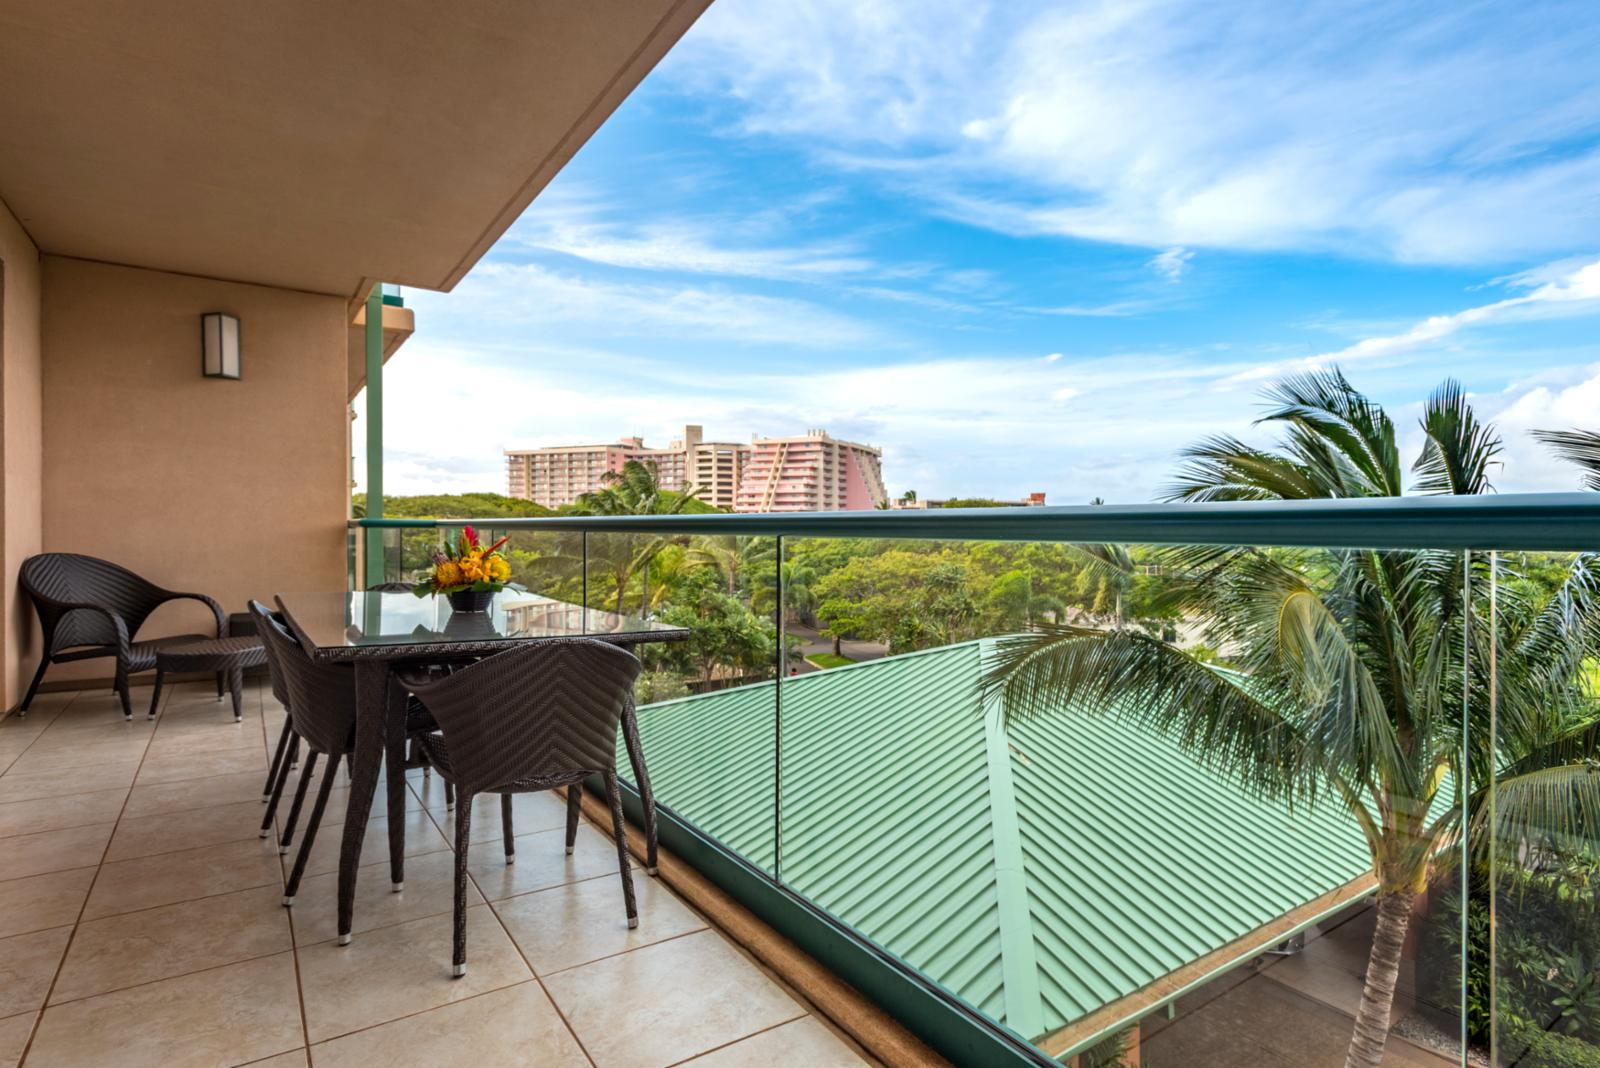 Balcony fit for grand entertaining and relaxation